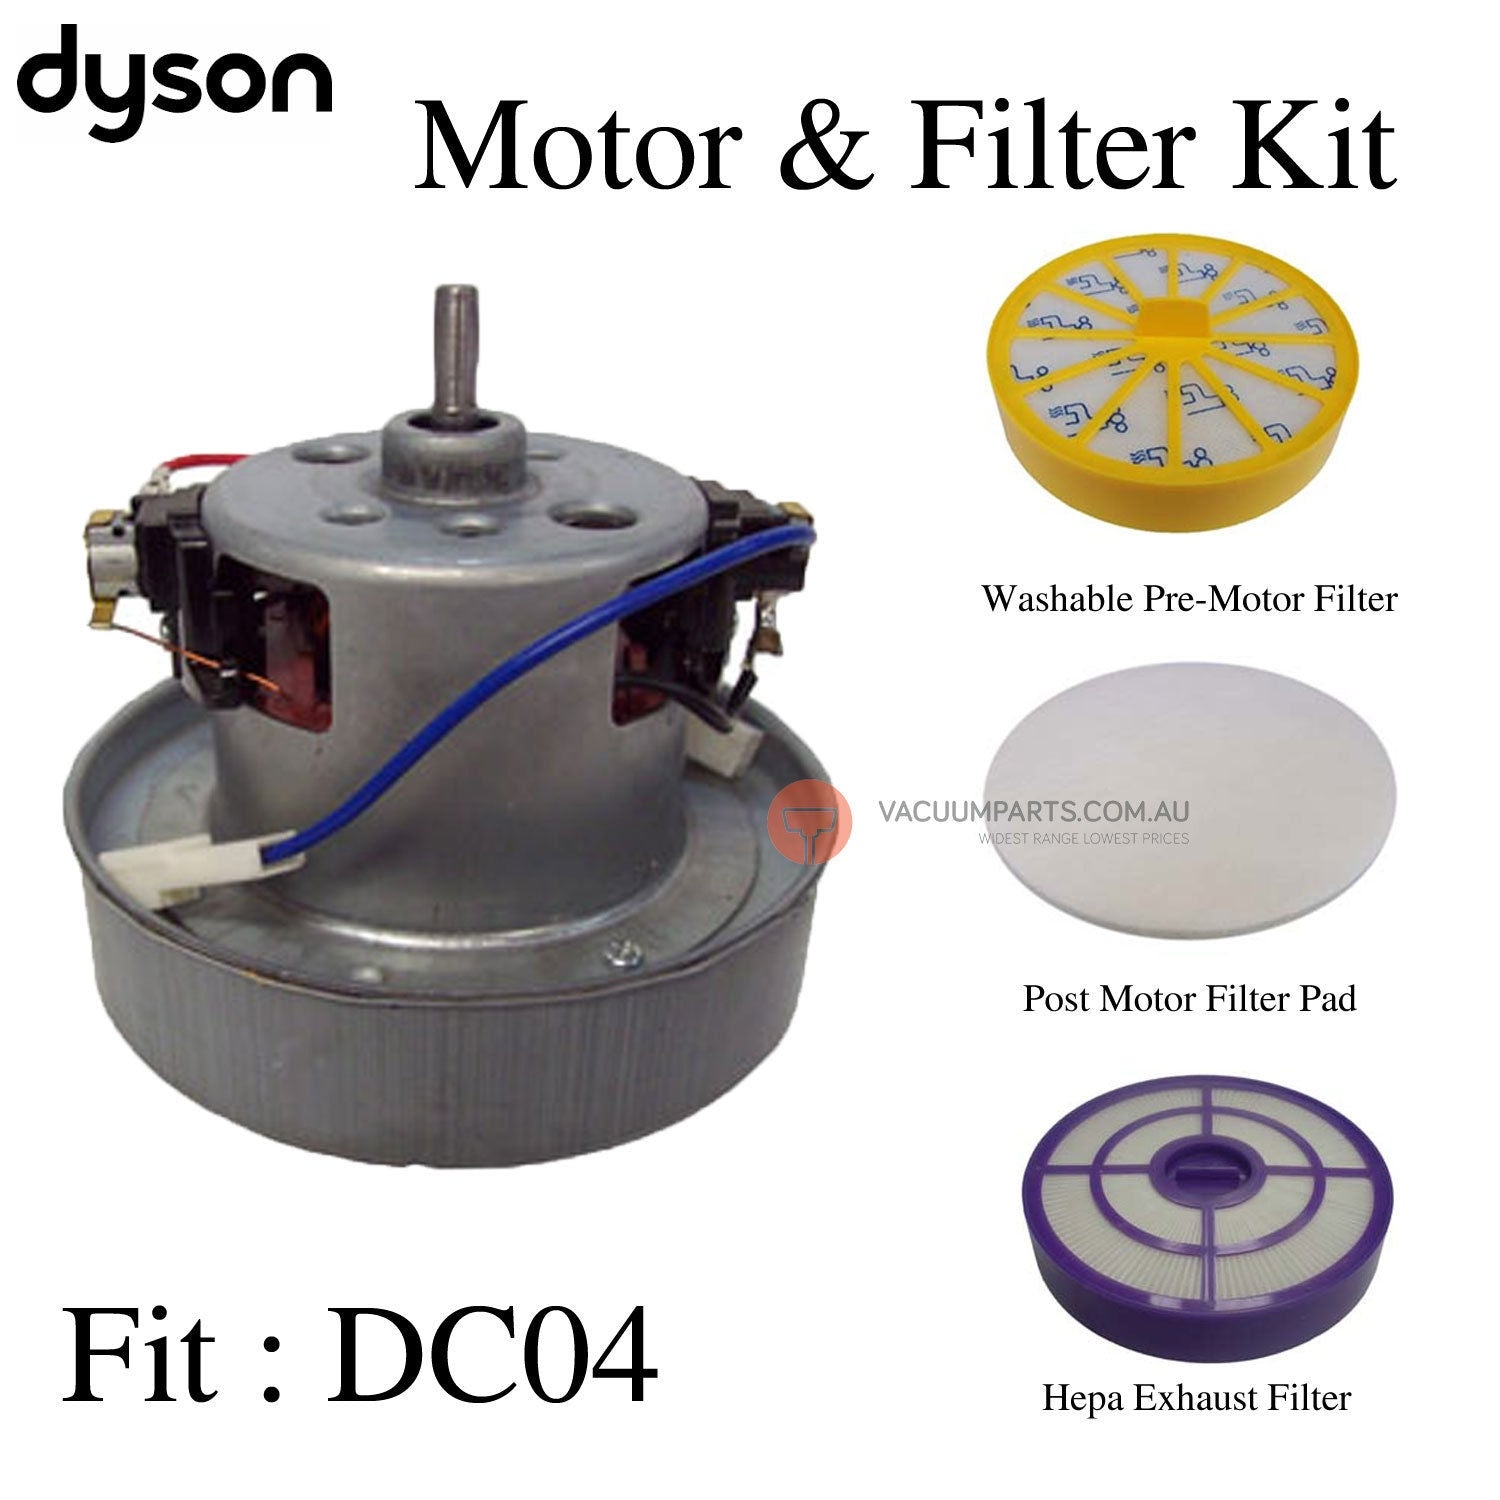 Dyson Long Shaft Motor & Filter Kit fit Dyson DC04 vacuum cleaner